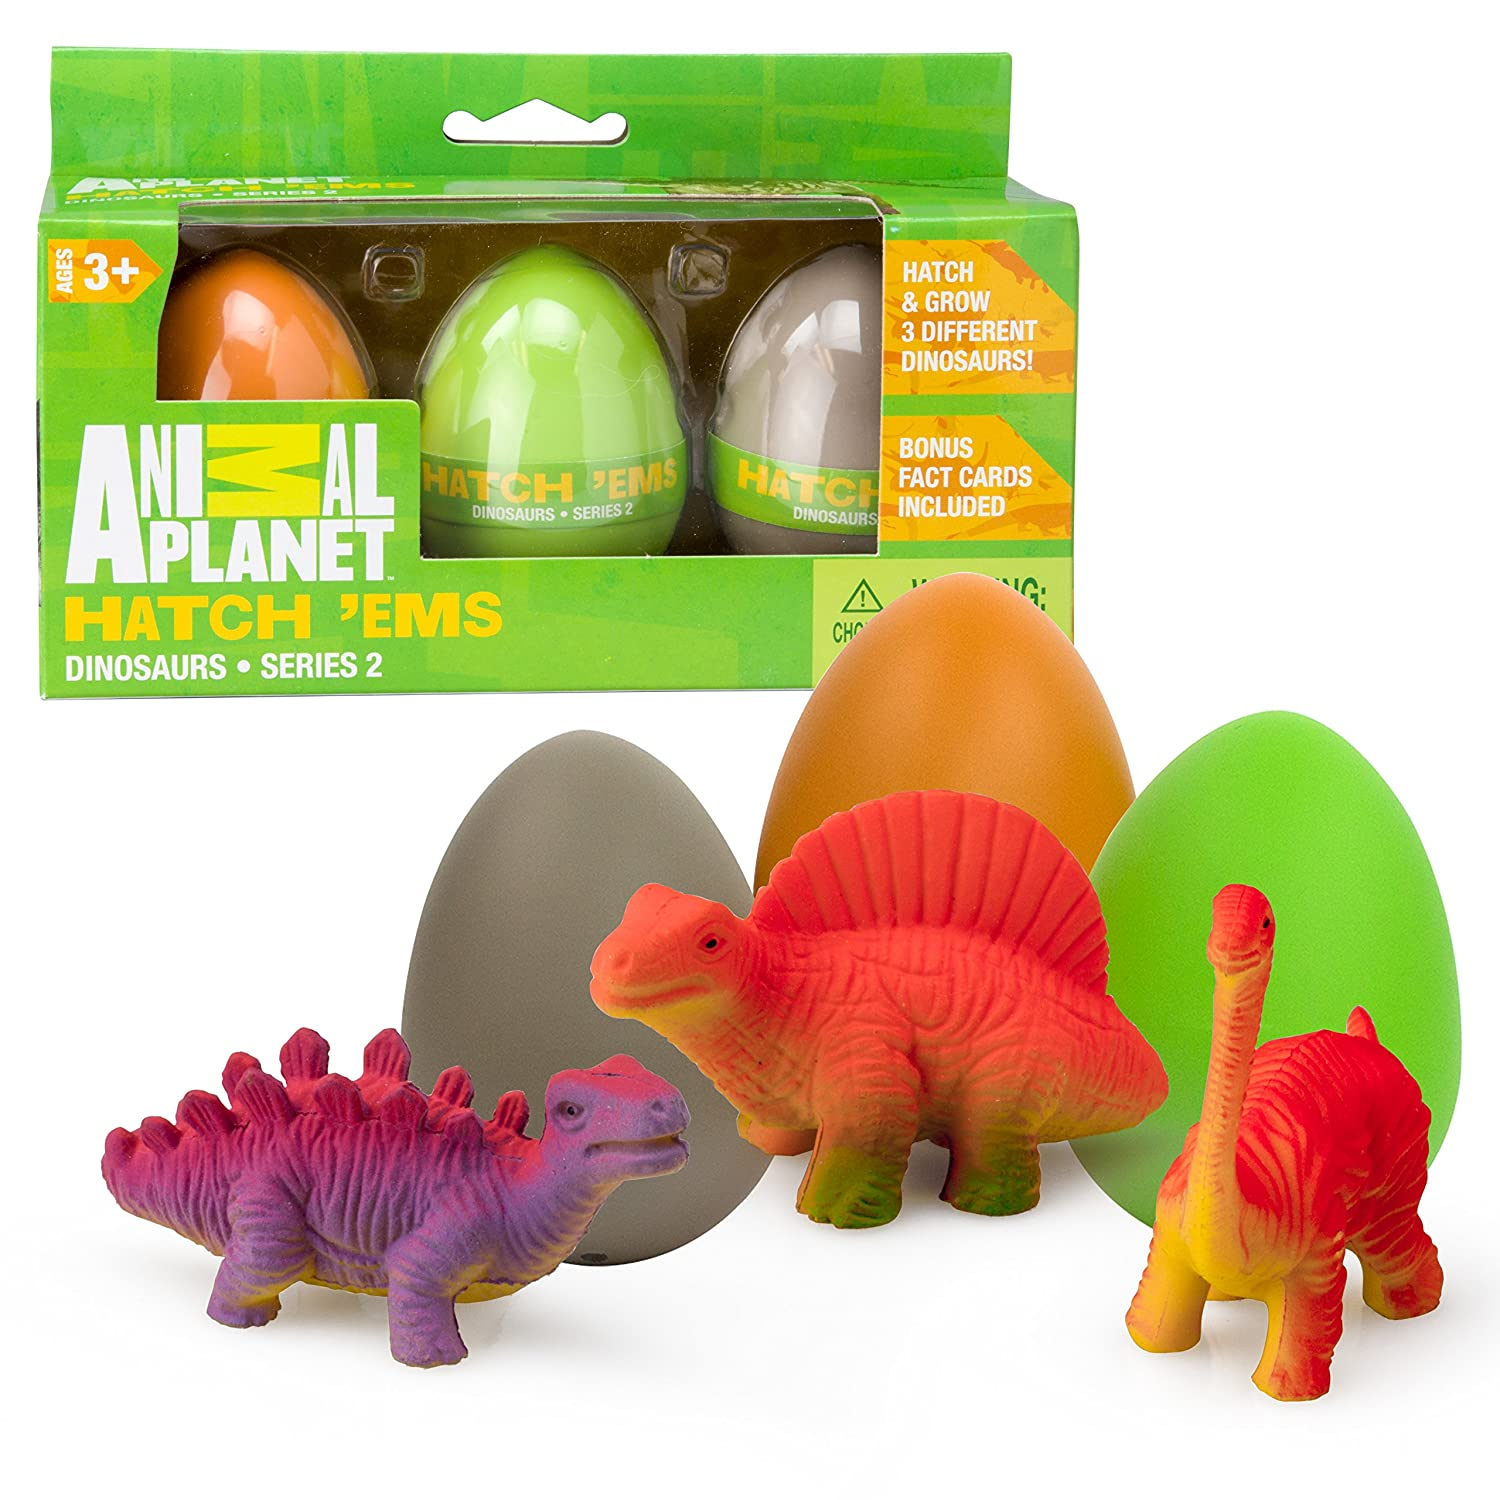 Best Animal Planet Toys For Kids And Toddlers : Great easter gifts for toddler boys age to gift canyon